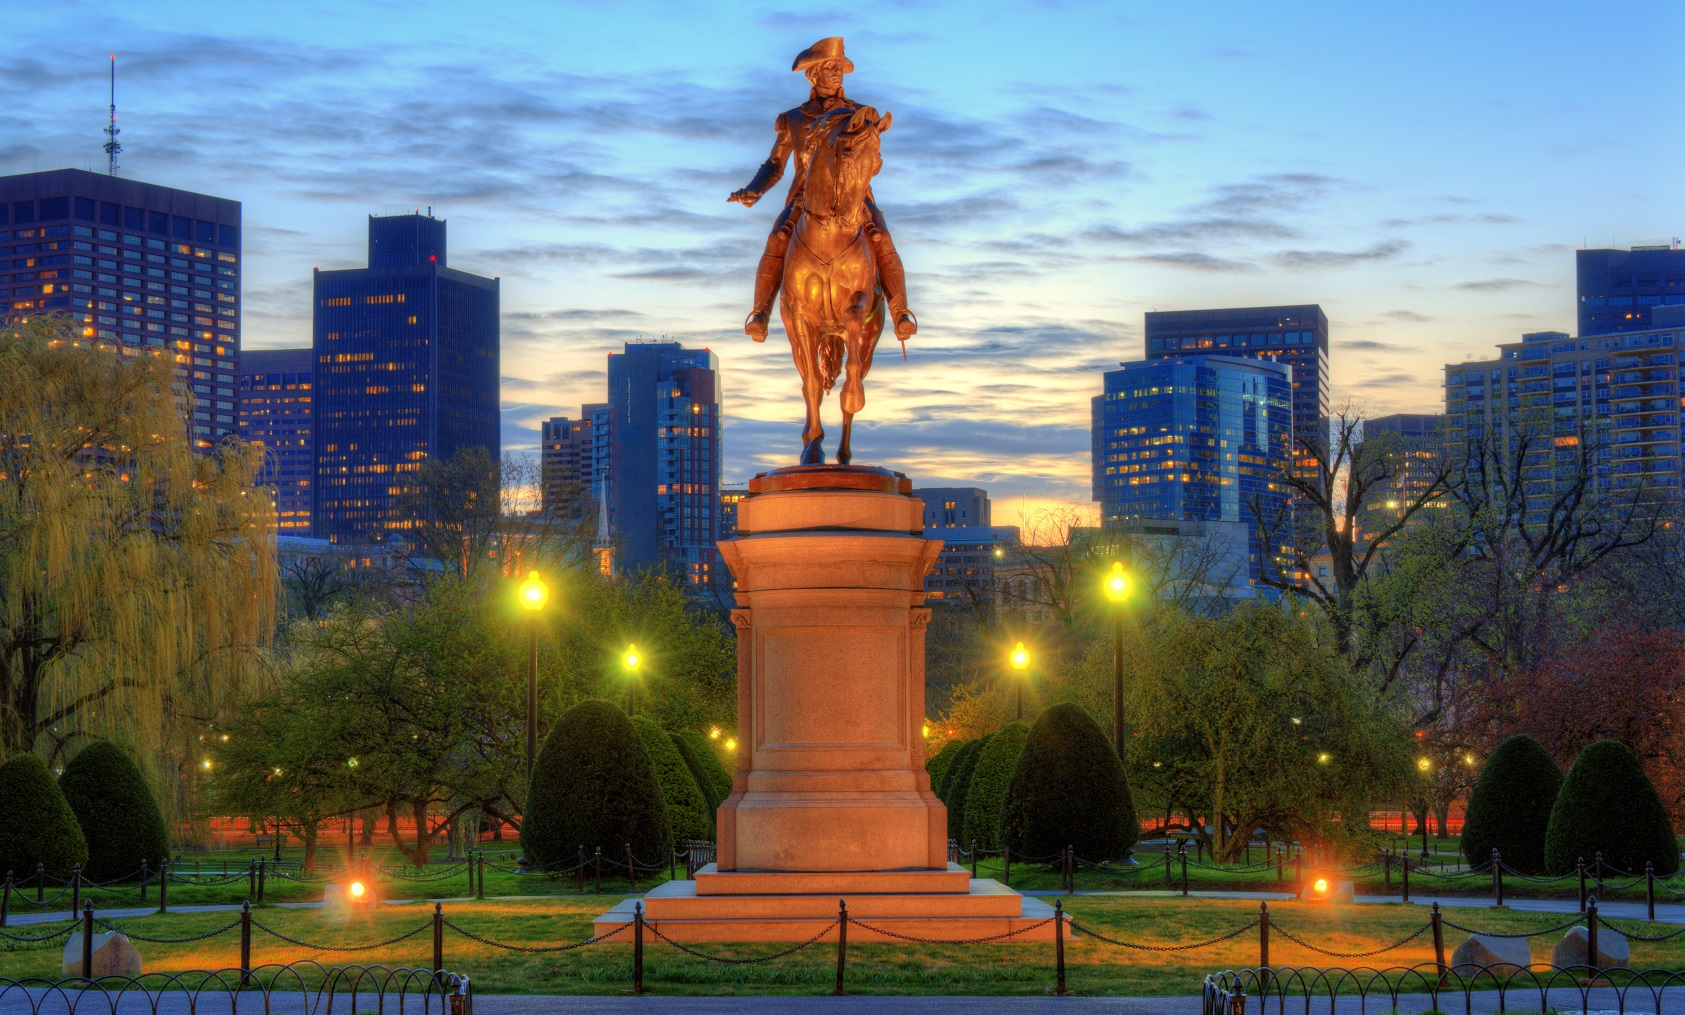 George Washington Statue at Boston Public Garden - wine and food pairing by winegeographic.com